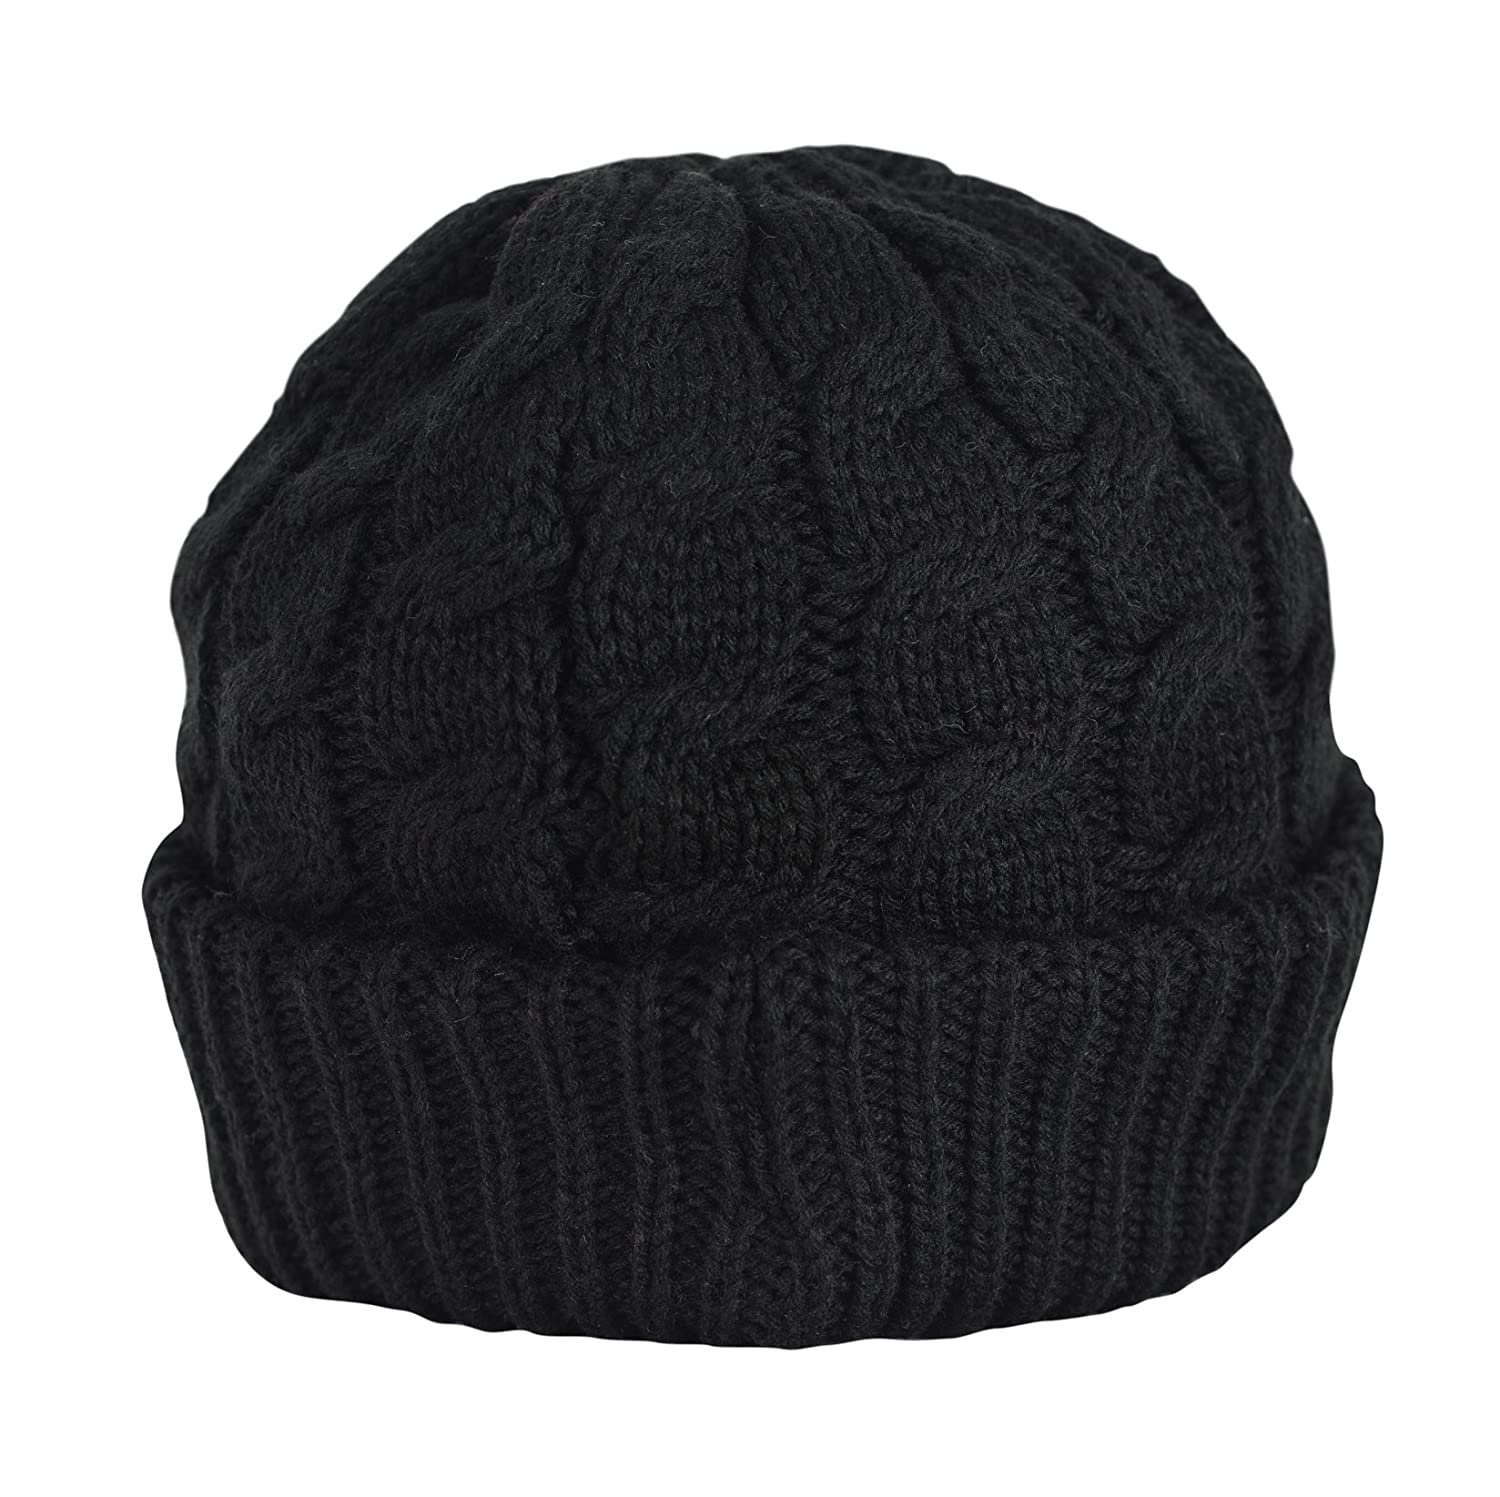 Amazon.com  Newsboy Cable Knitted Hat with Visor Bill Winter Warm Hat for  Women in Black 7d631d0042d